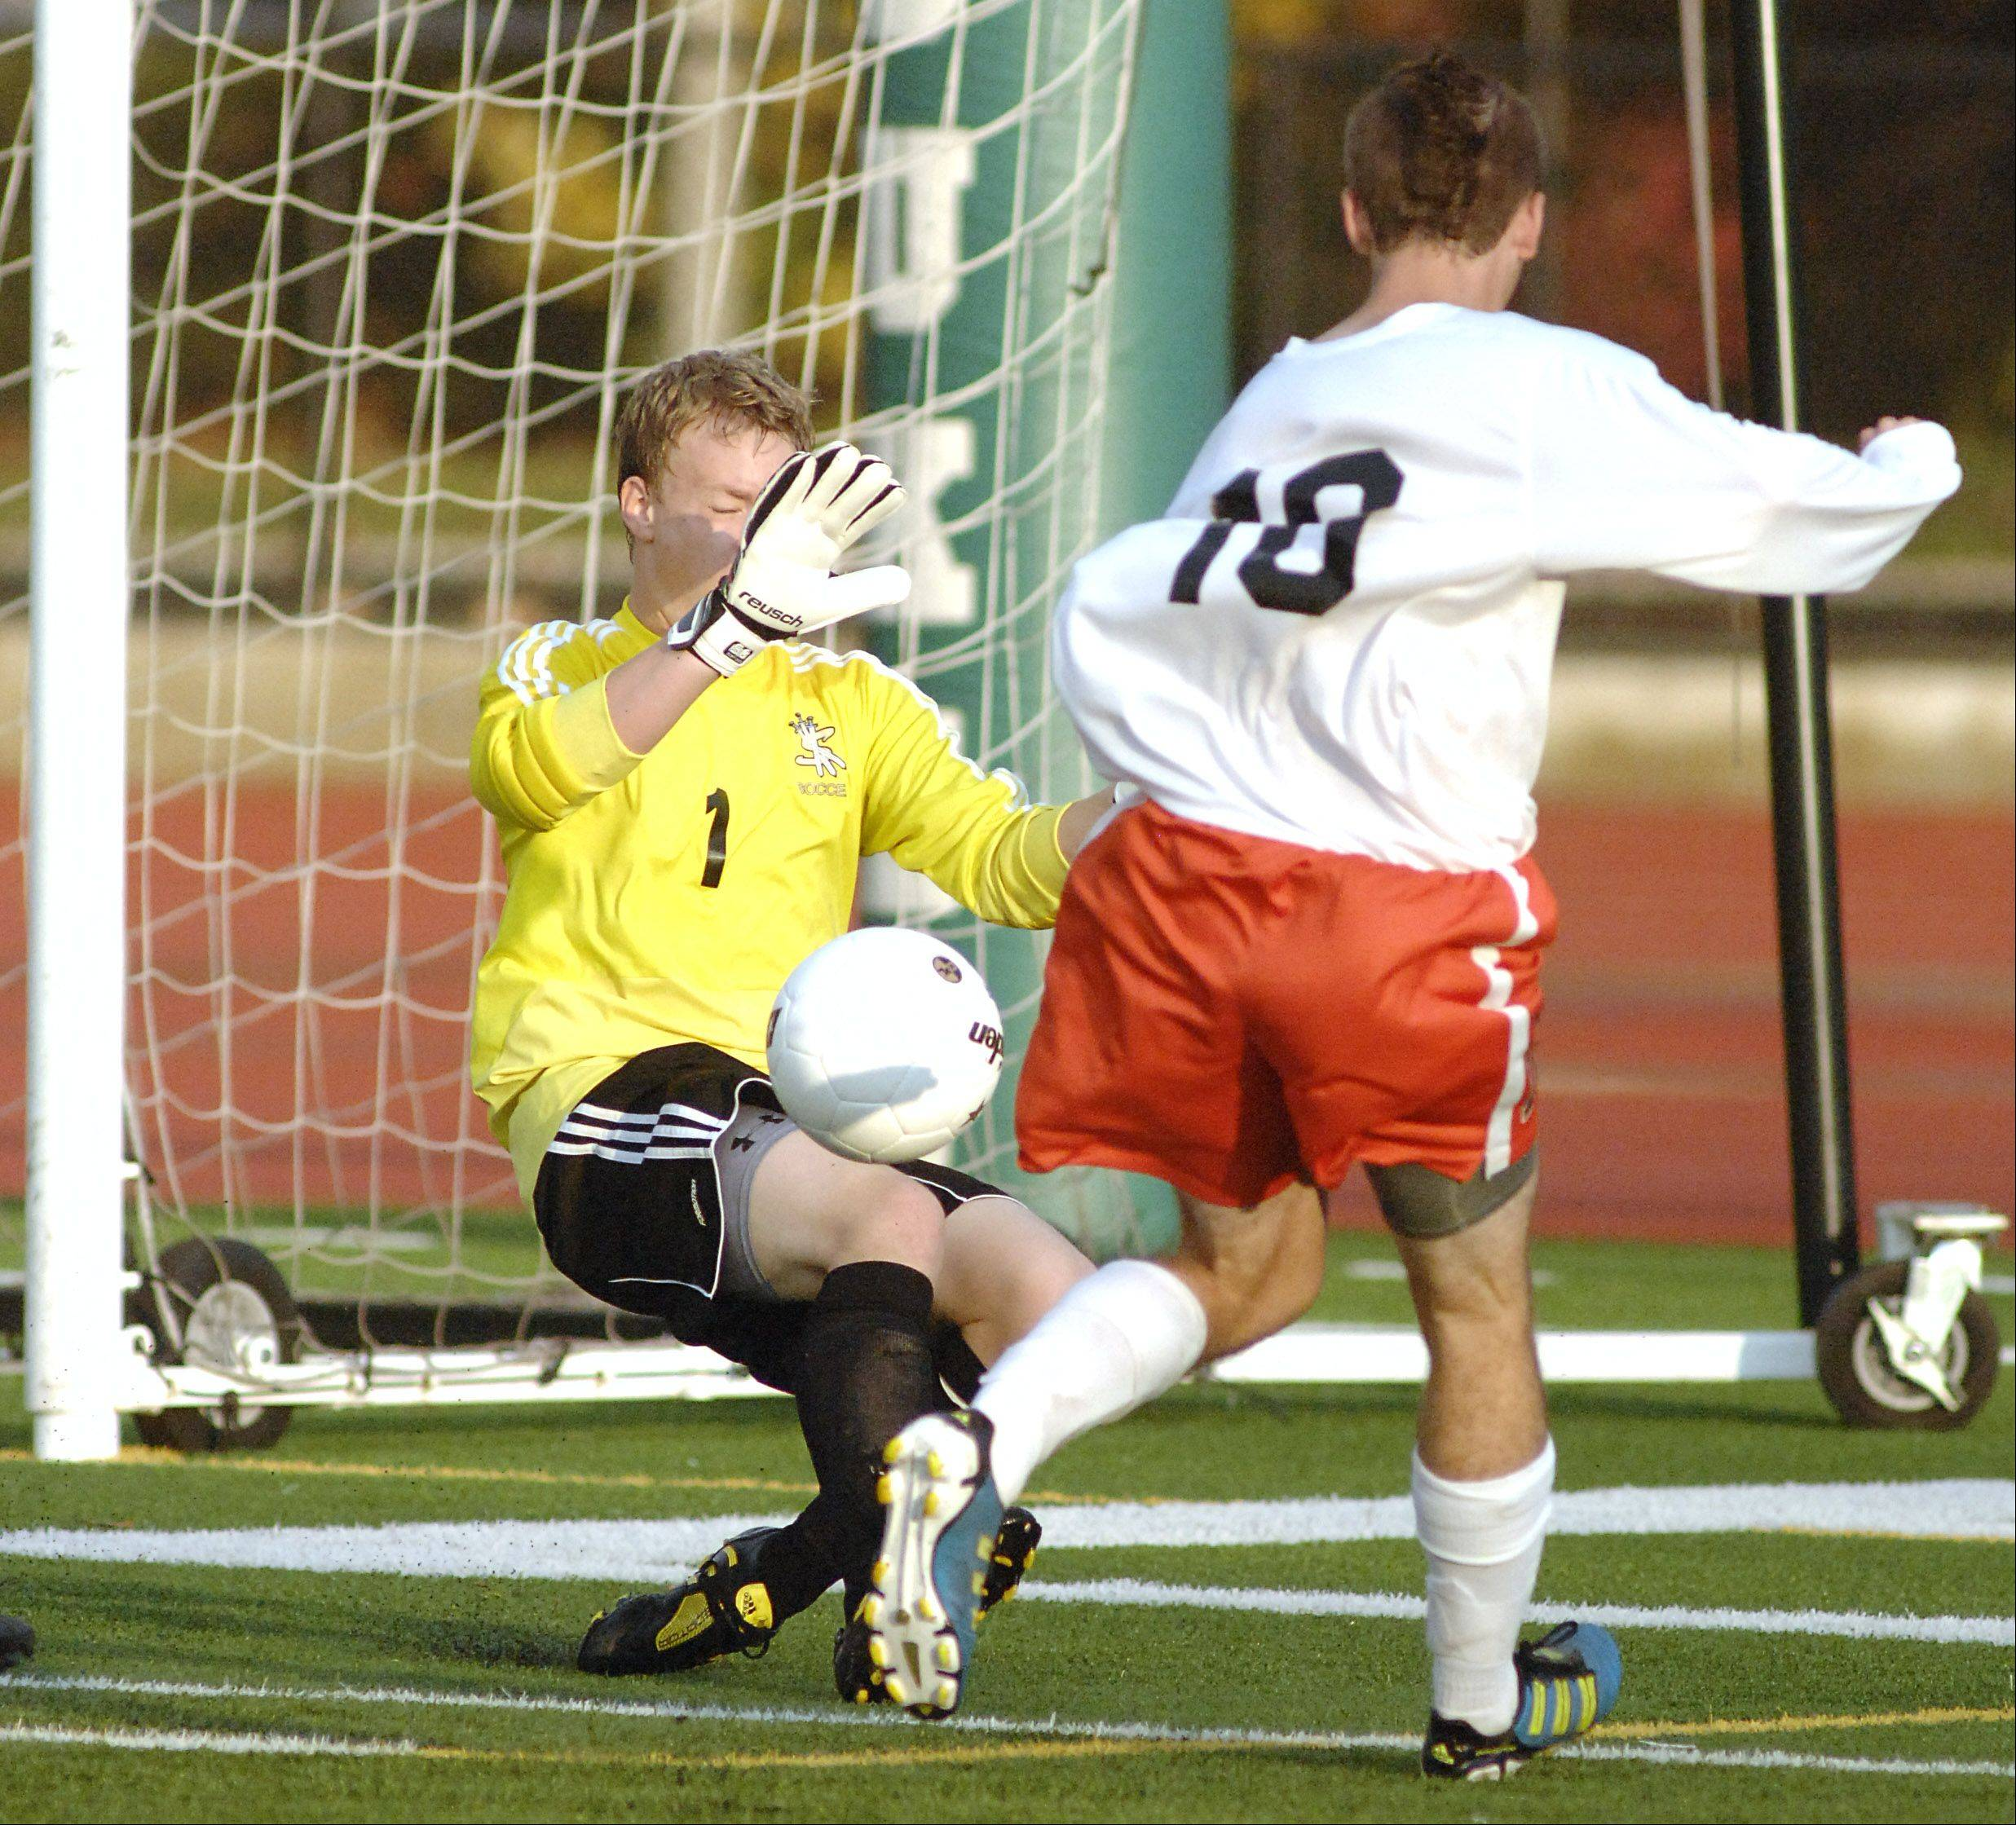 A goal kick by St. Charles East's T.C. Hull slips just past Streamwood's Phil Lewy resulting in a goal for the Saints in the first half on Tuesday, October 23.